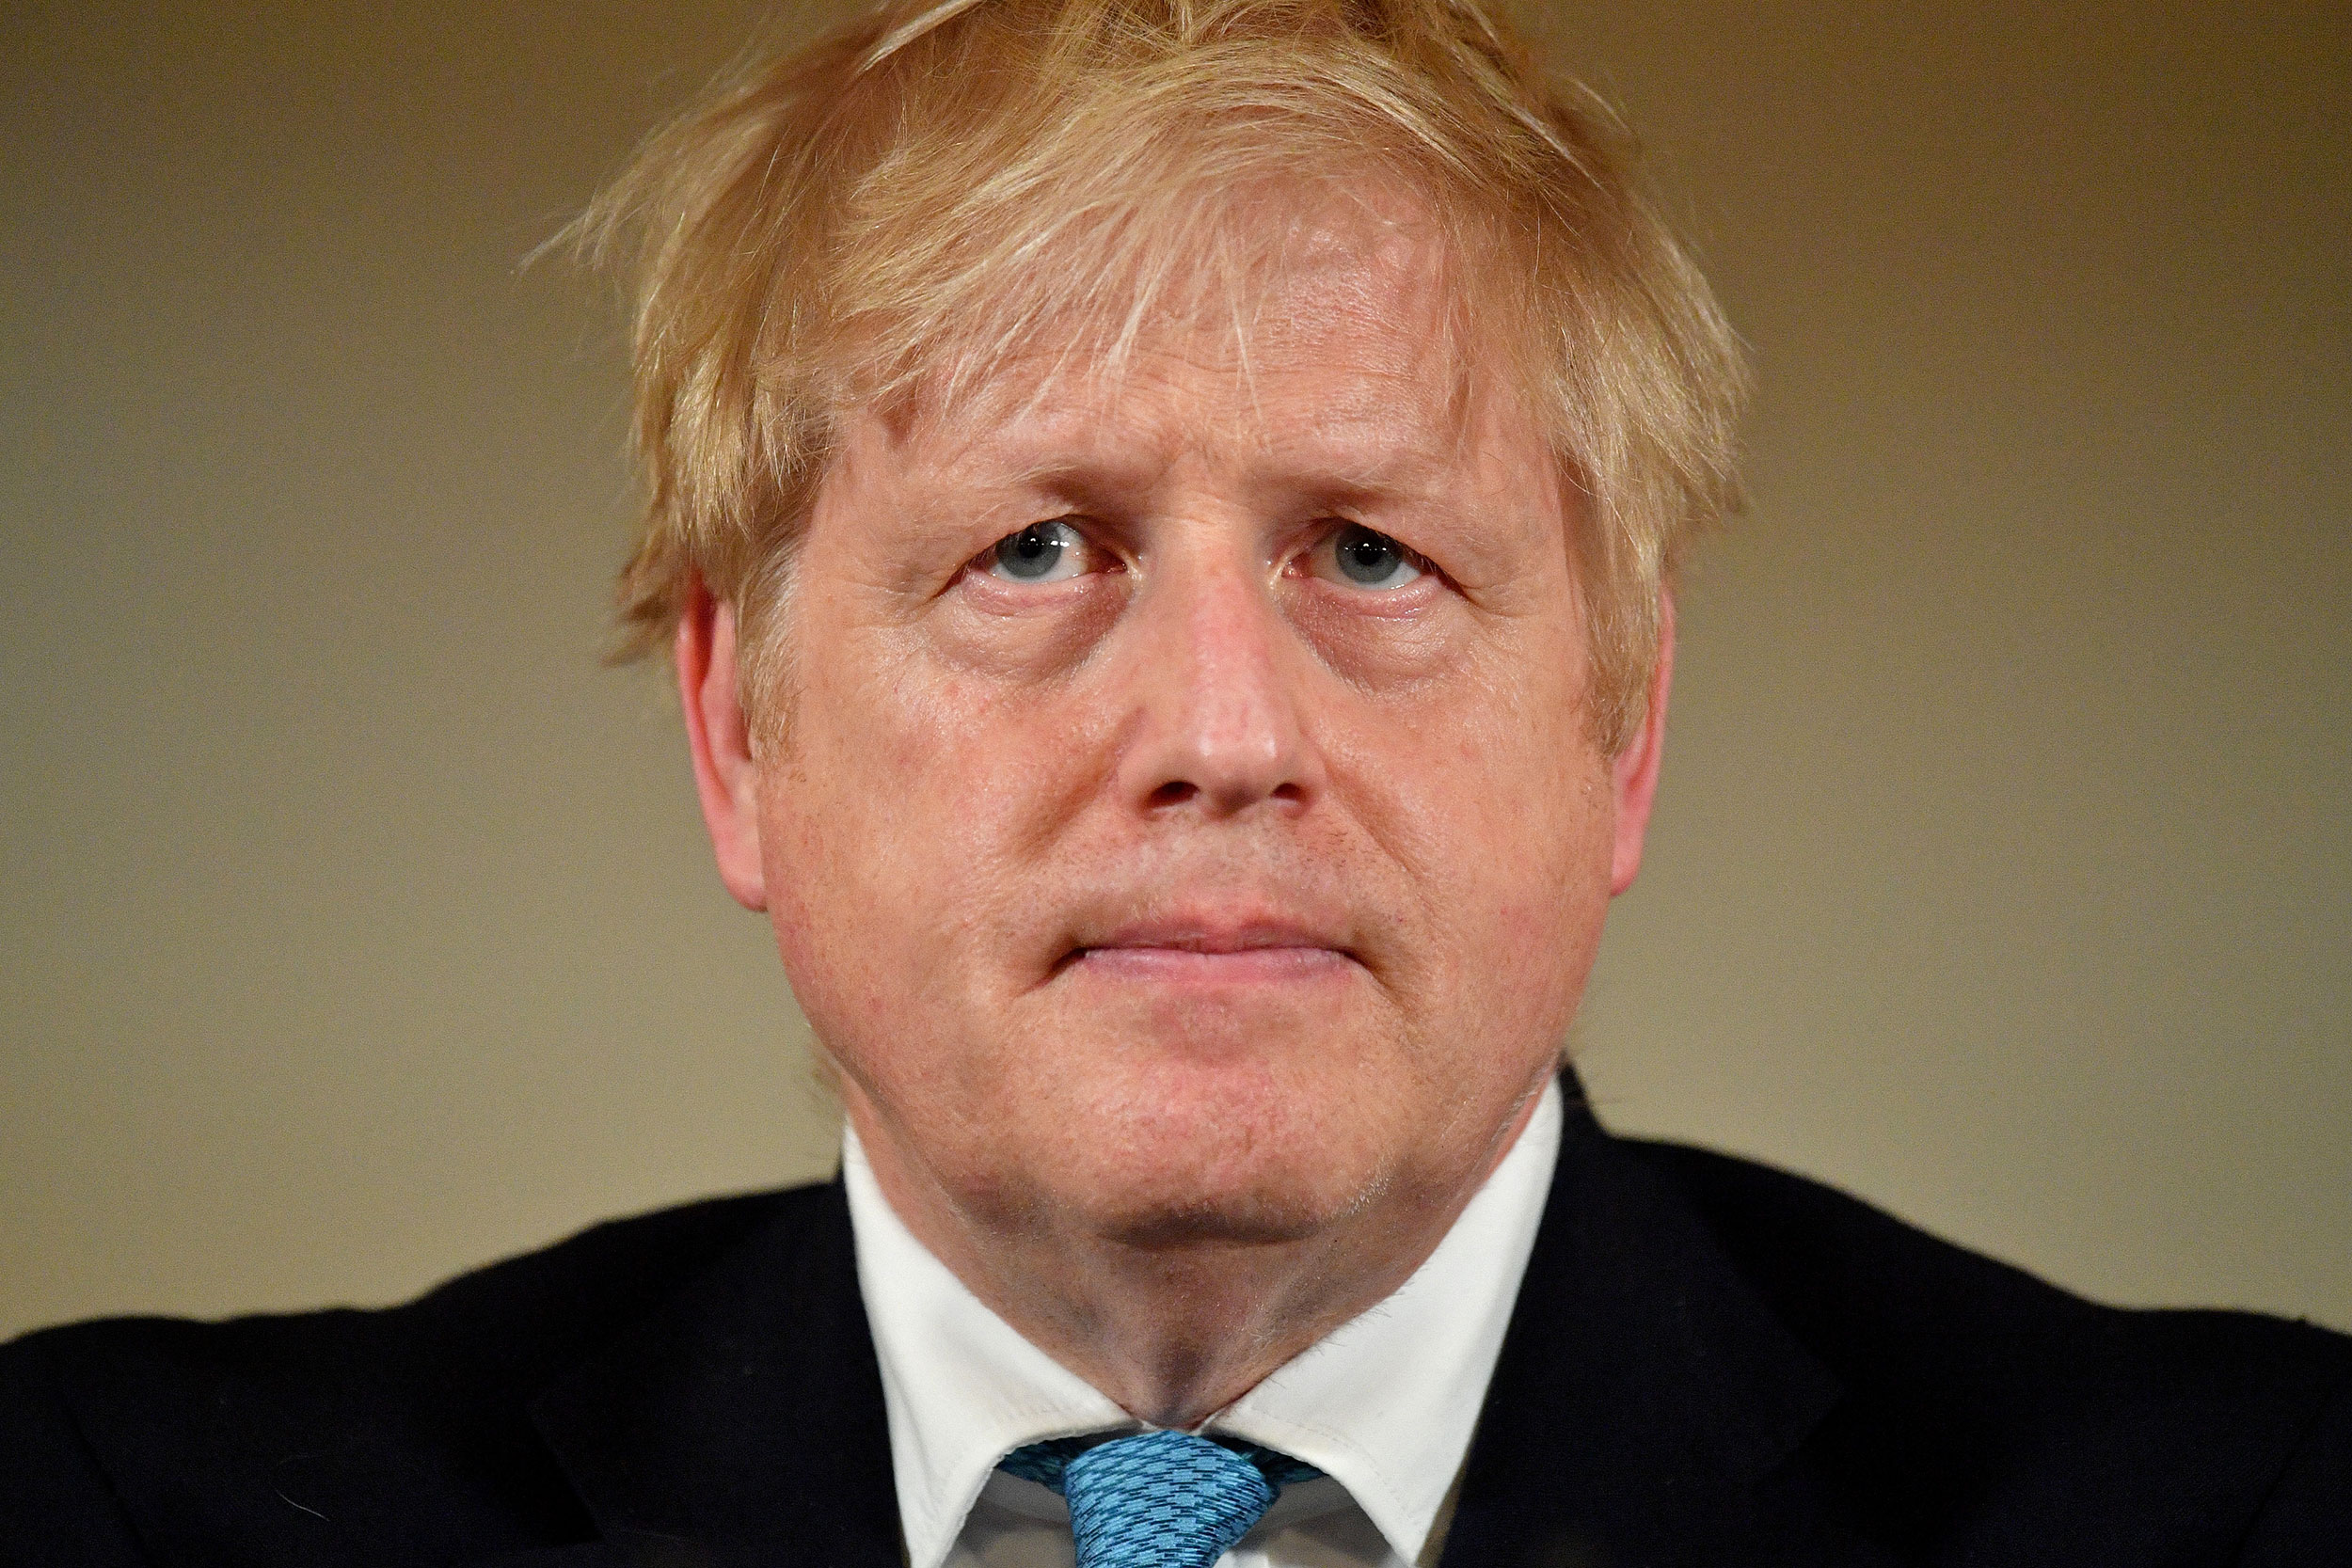 British Prime Minister Boris Johnson attends a coronavirus news conference inside number 10 Downing Street on March 19 in London.